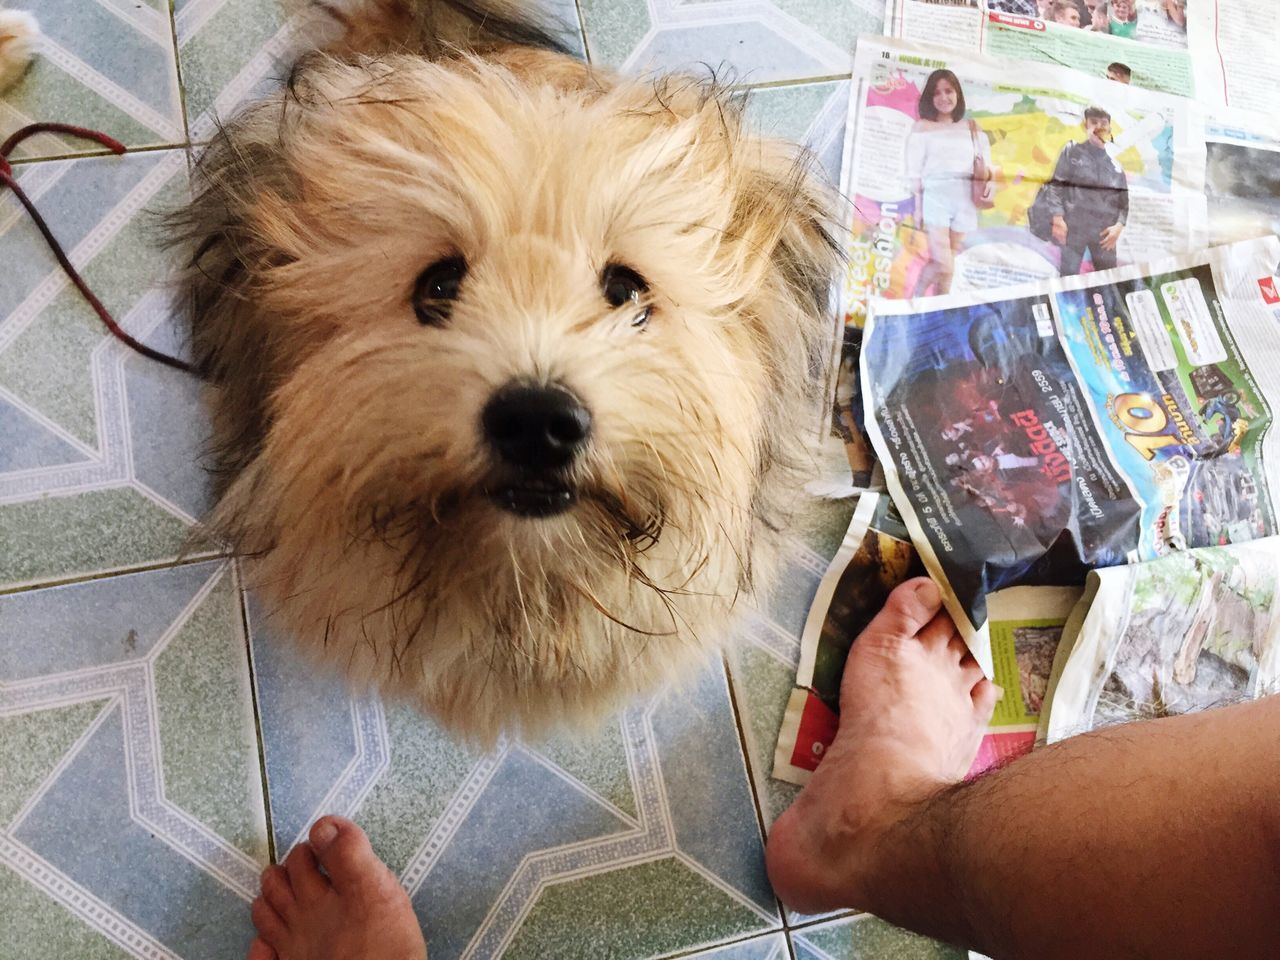 Give me food human Hairy  Silly Dog Hungry Happy Look Up Feed Me Eat All Time Pet Big Funny Dog Walk Around Bangkla In House